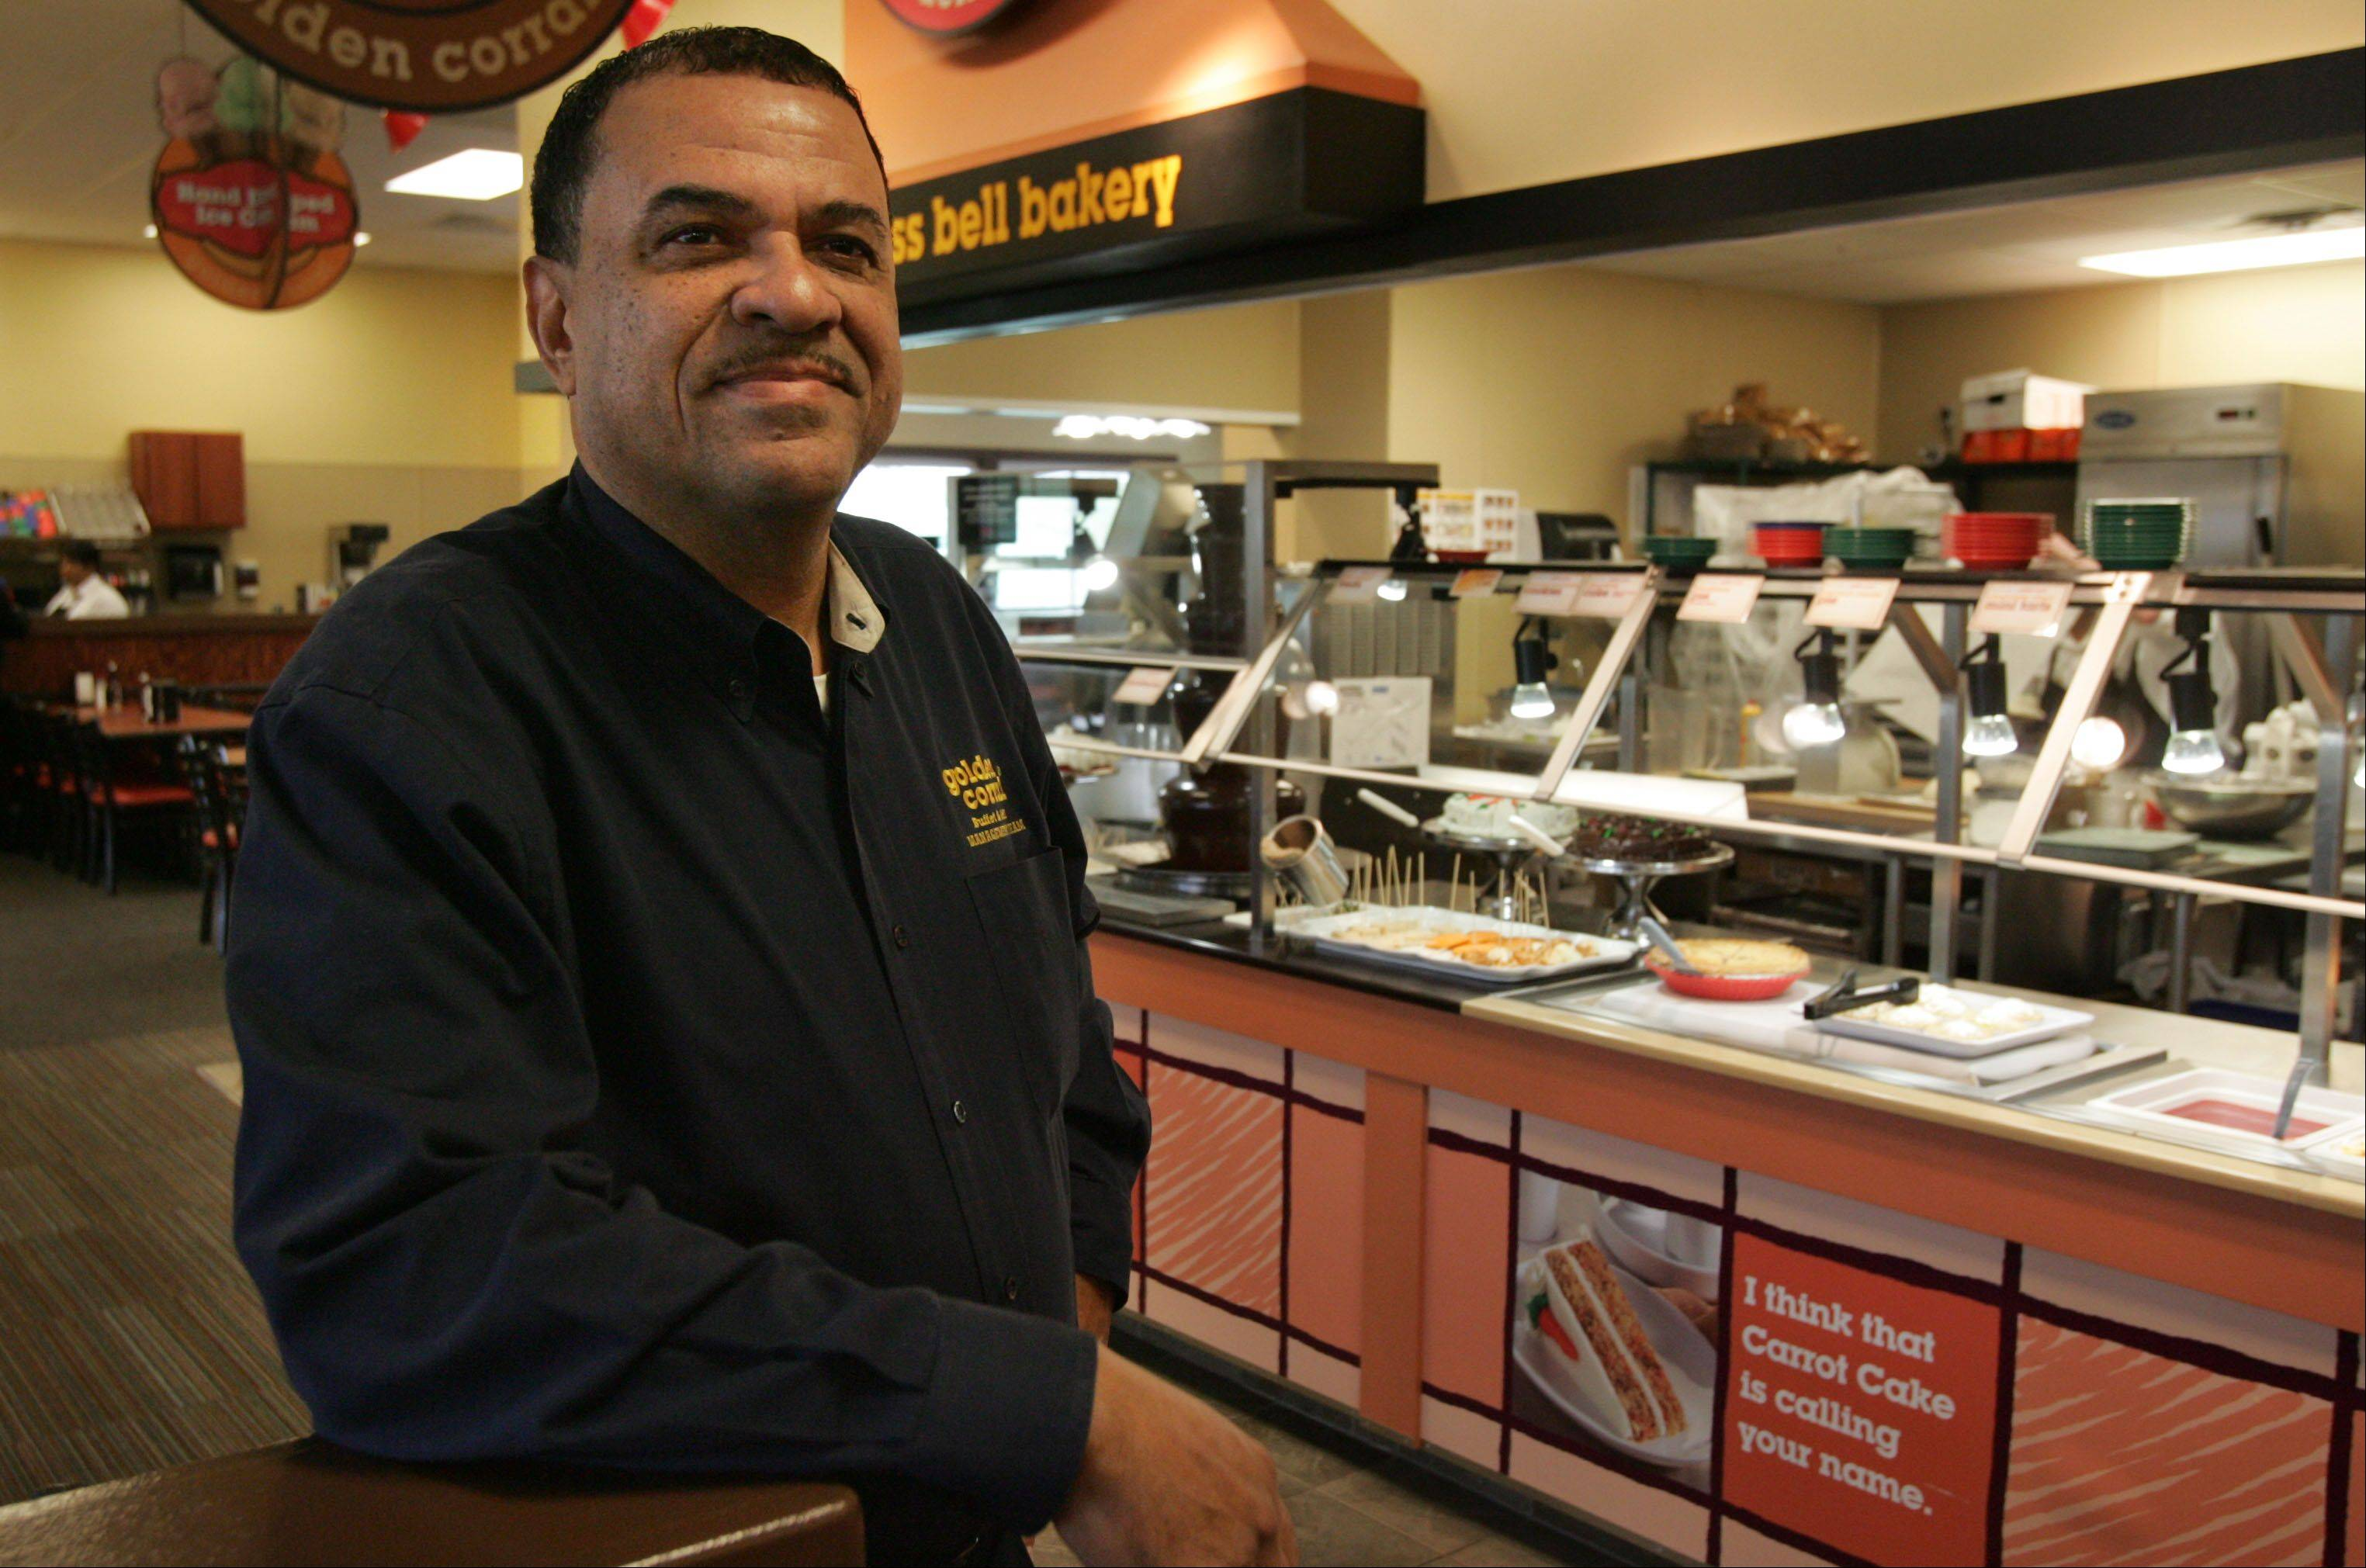 Samuel Gibson is the owner of Batavia�s new Golden Corral restaurant, which opened last month.